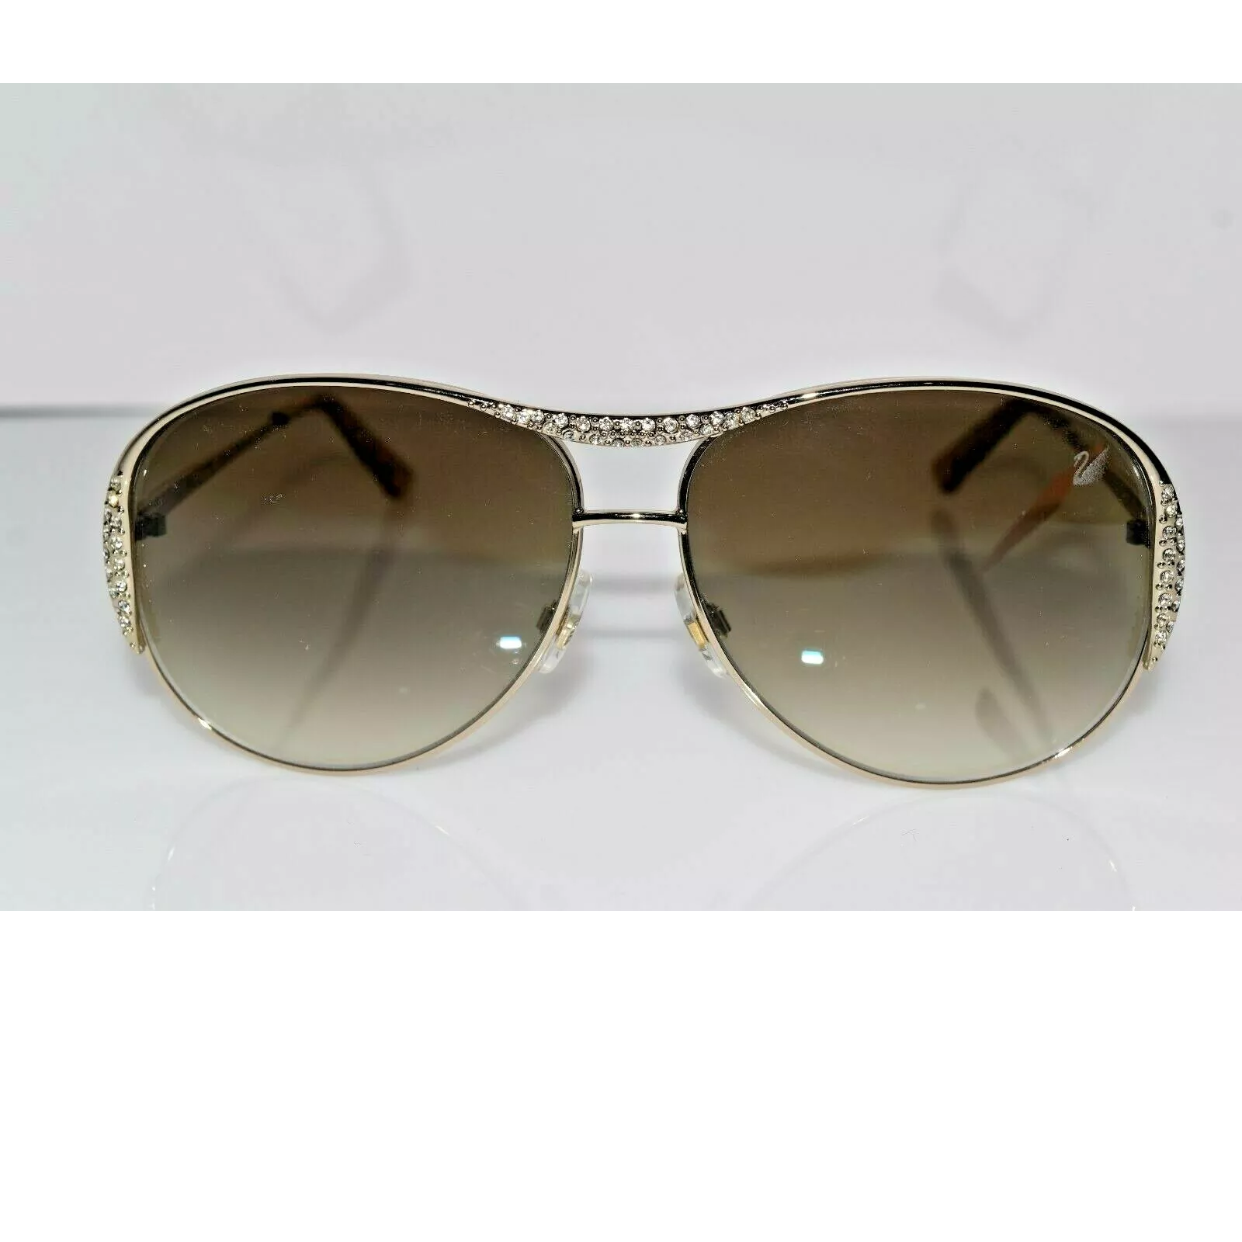 Swarovski Chic Aviator Women's Sunglasses